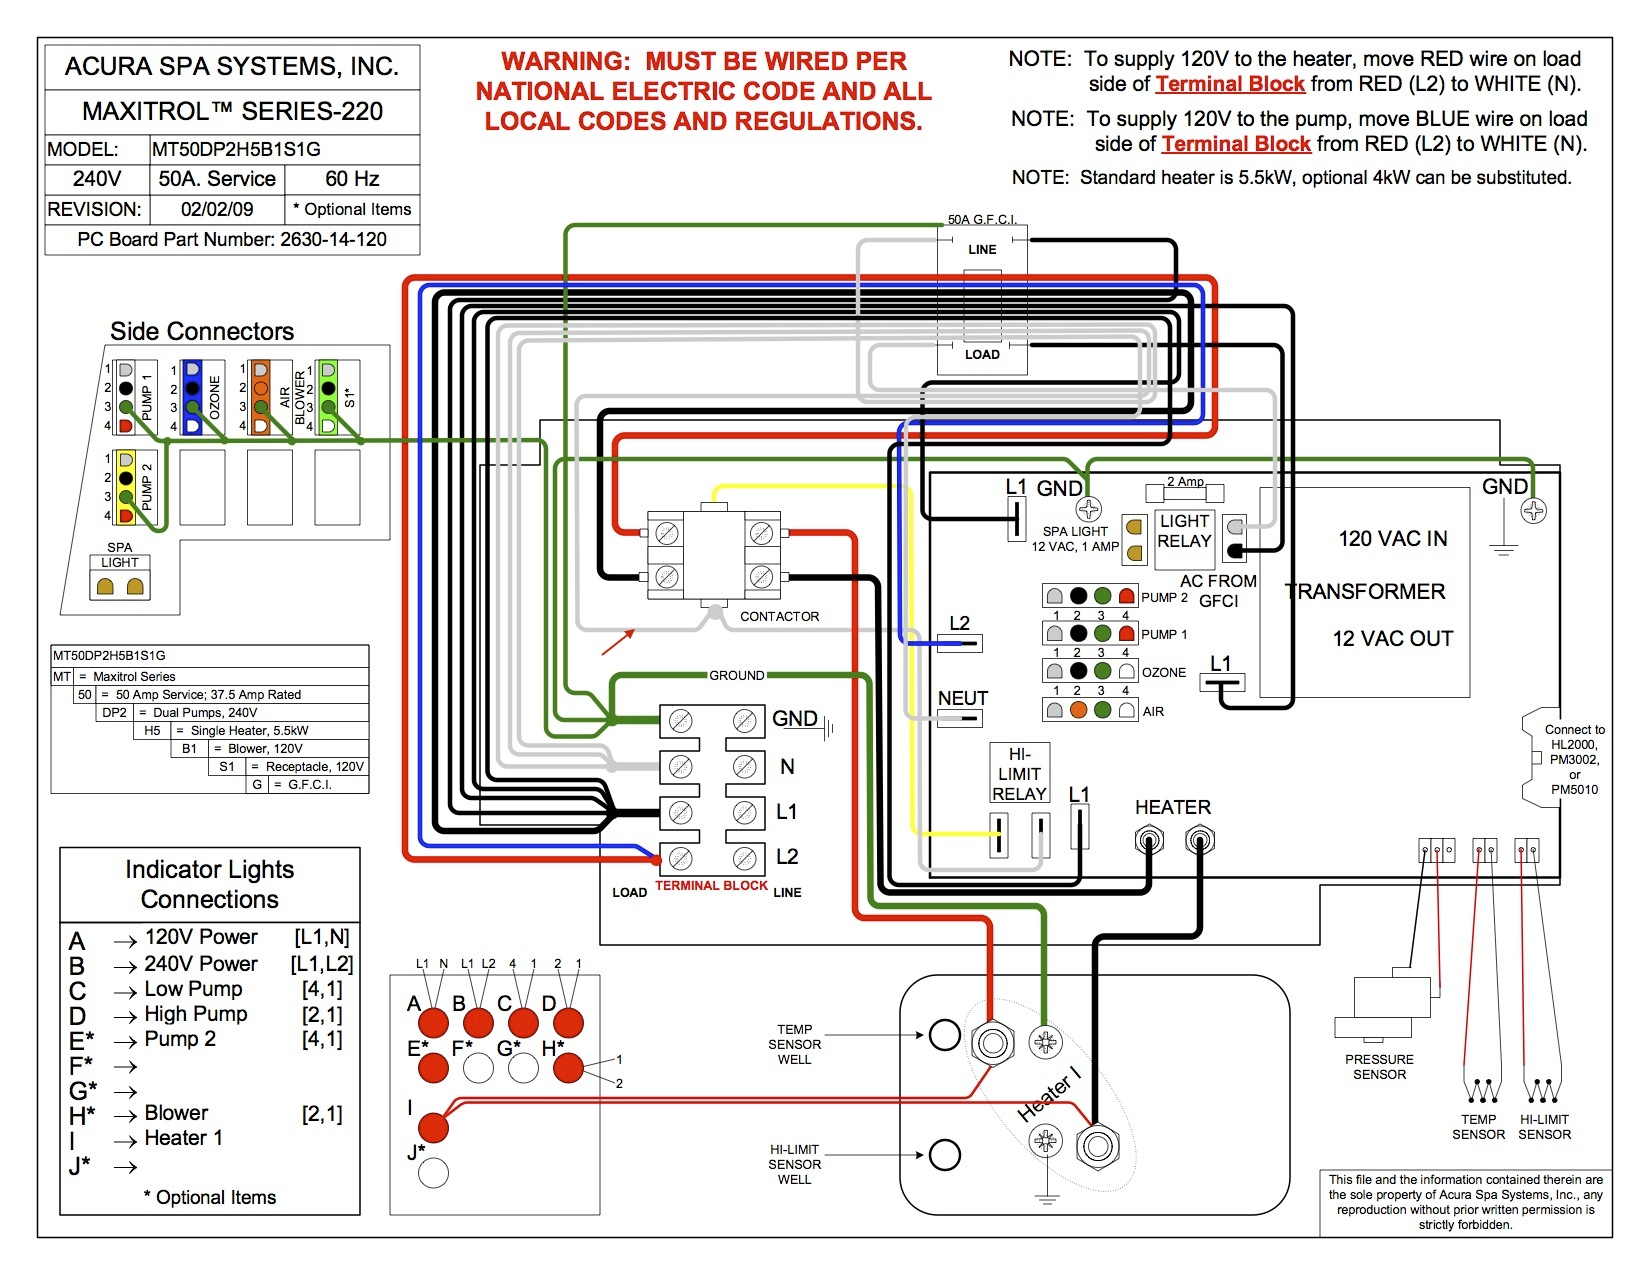 Acura Spa Wiring Diagram MT50DP2H5B1S1G spa pump motor wiring diagram, century motors used in ultra jet hot springs hot tub wiring diagram at nearapp.co